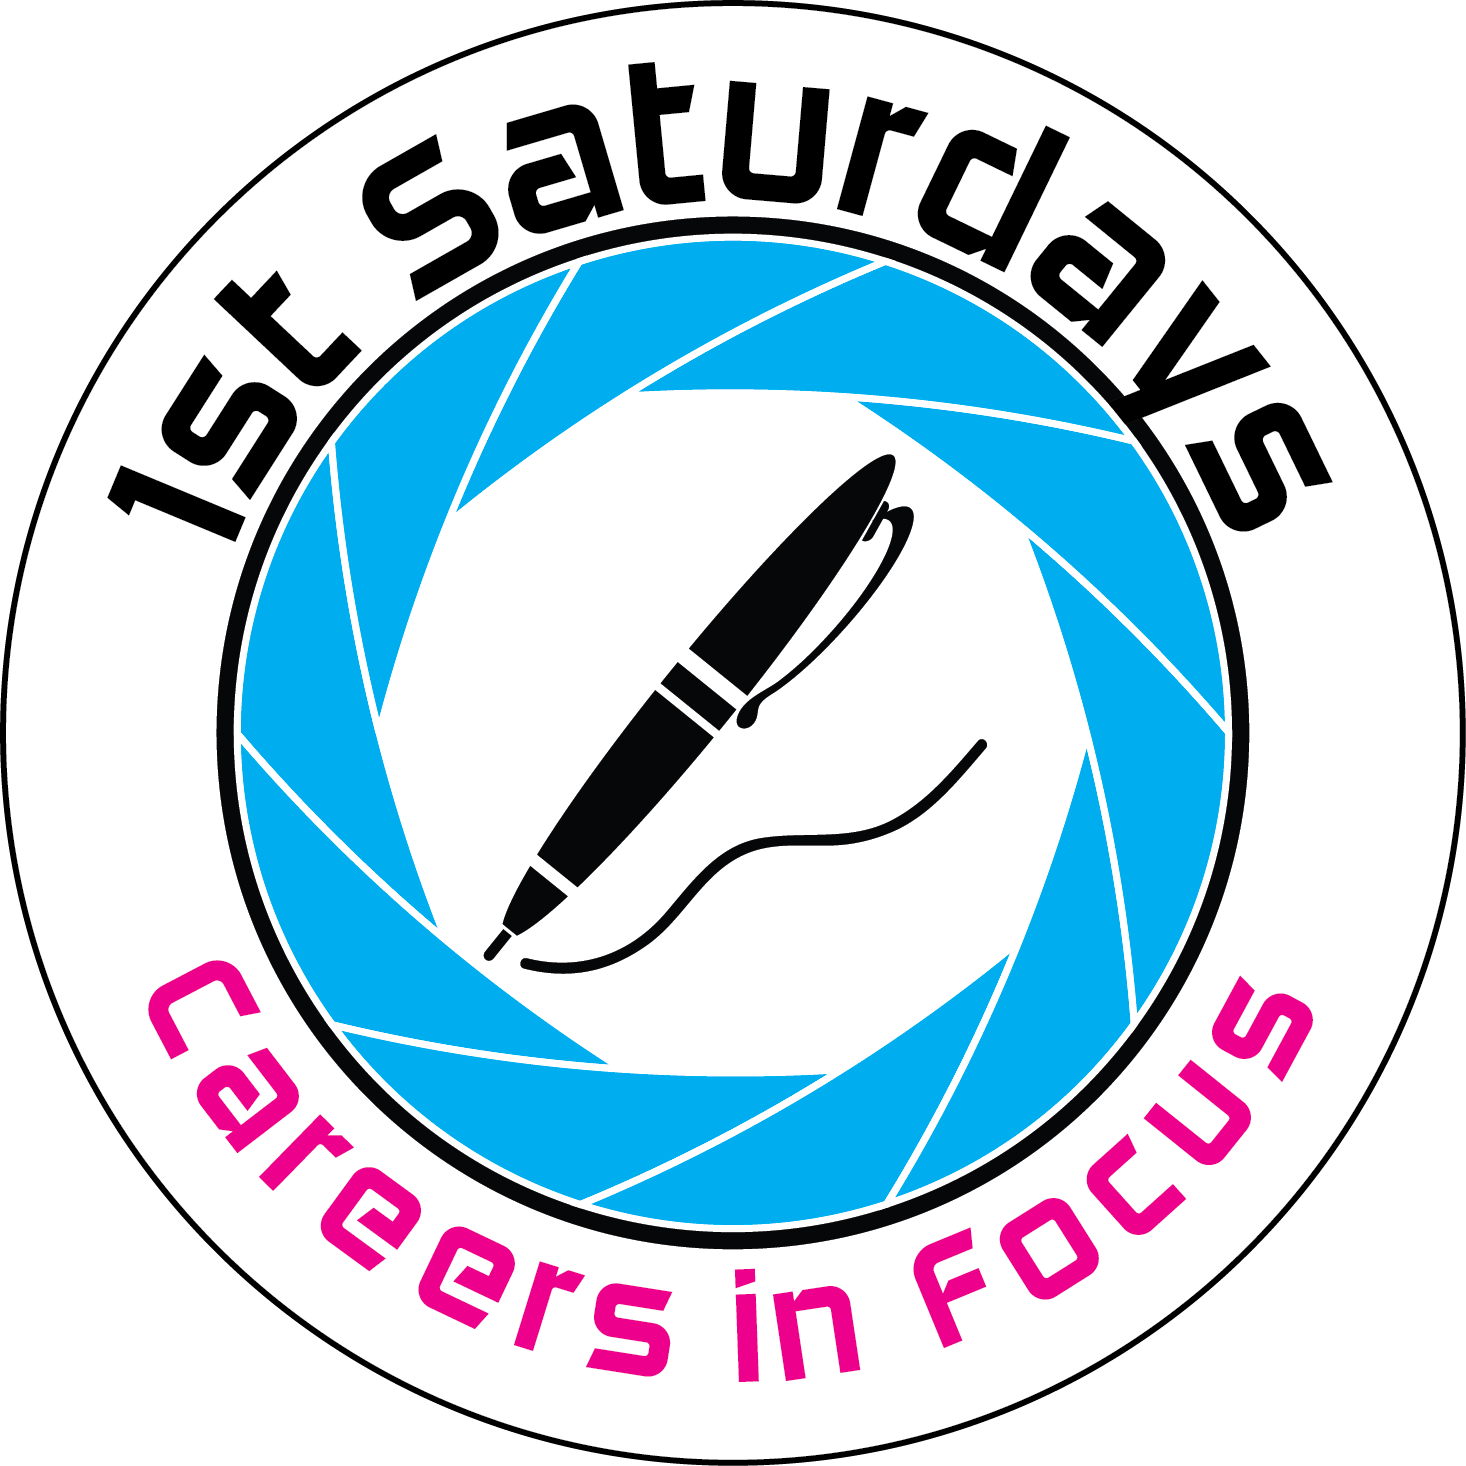 1st Saturdays: Careers in Focus Attendee (Writing & Publishing)